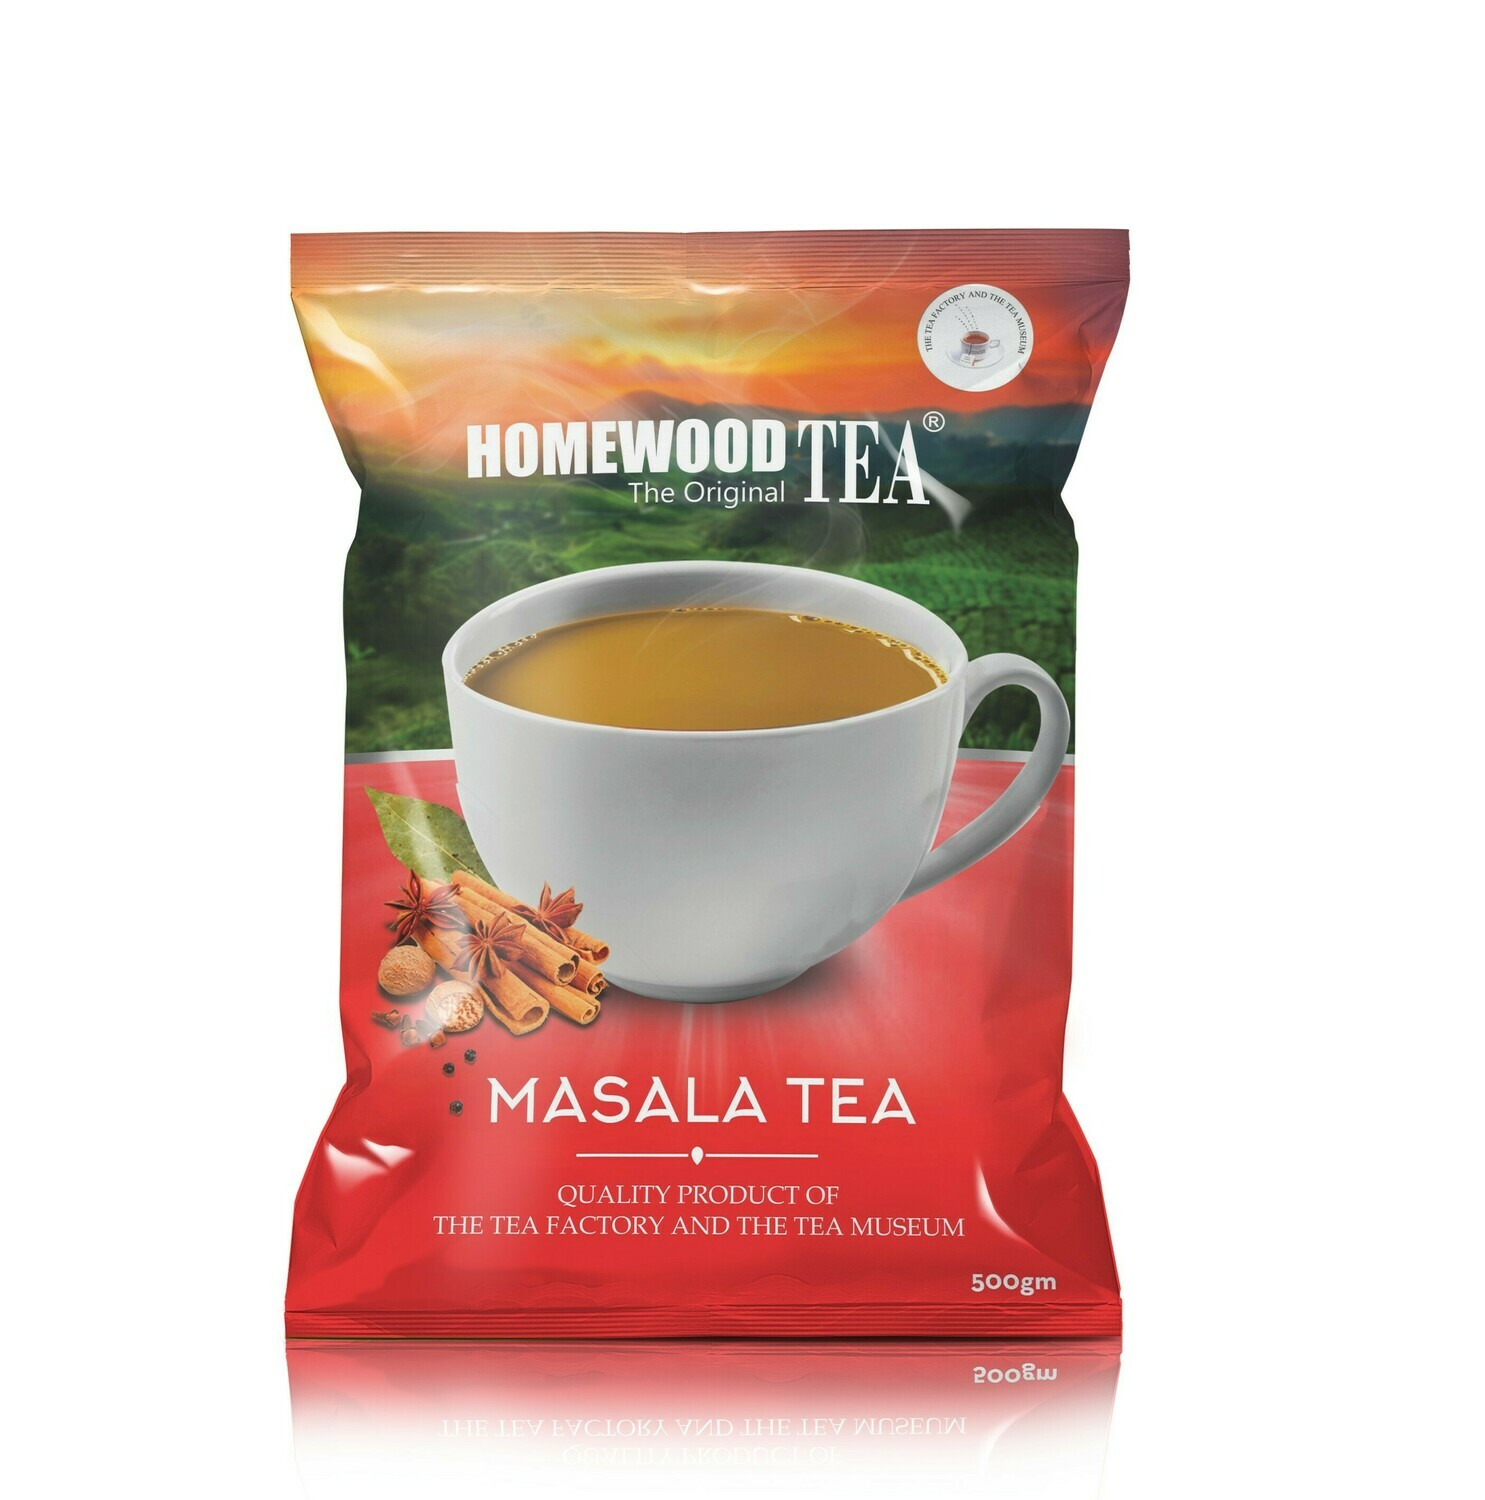 Homewood Masala Tea